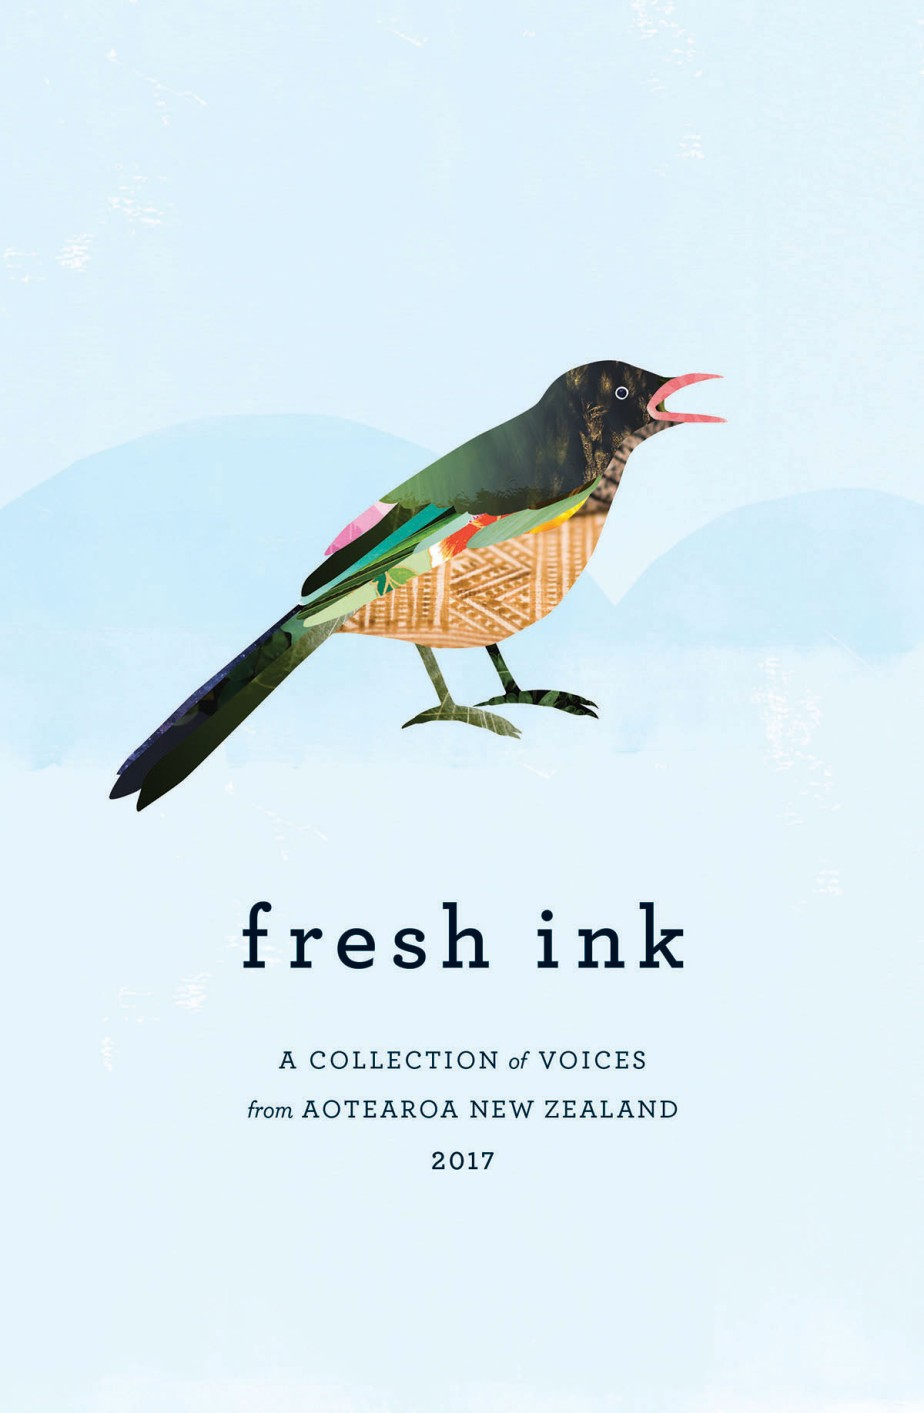 Suzanne-Day-fresh-ink-book-cover